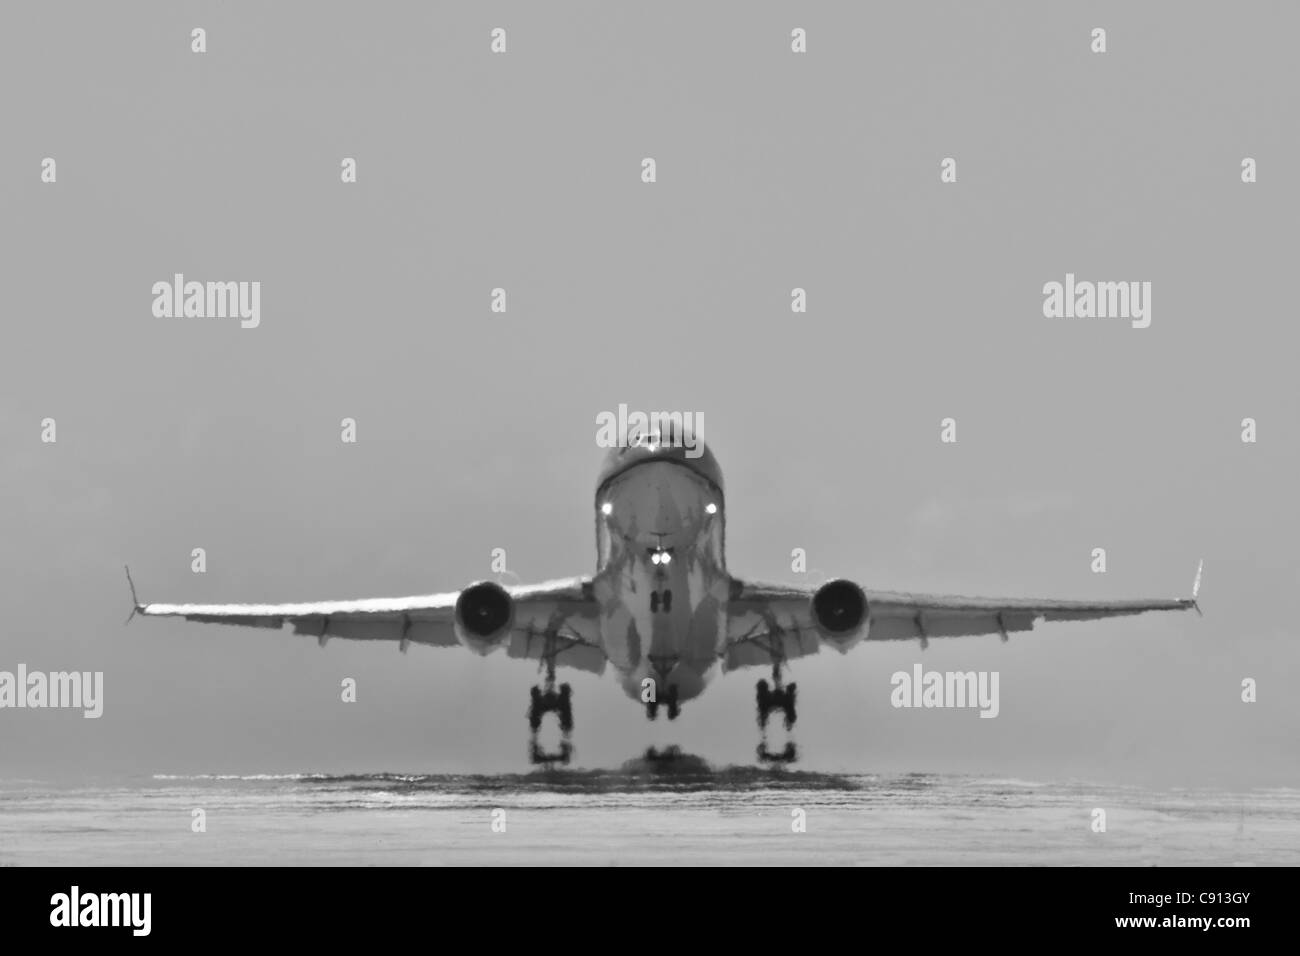 Bonaire Island, Dutch Caribbean, Kralendijk, KLM Douglas DC-10 airplane, taking off from Flamingo Airport. Black - Stock Image